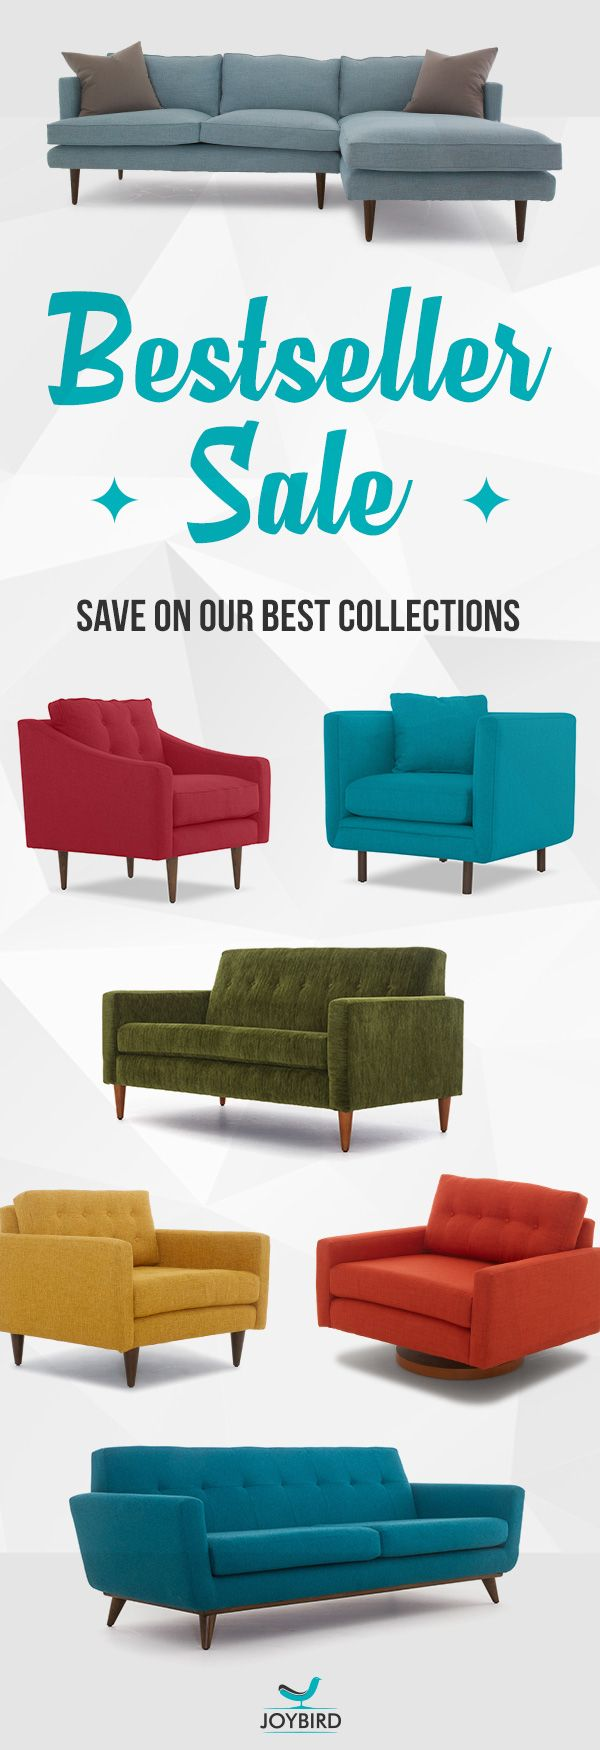 Make a statement with iconic mid-century modern furniture from Joybird. Enjoy free in-home white glove delivery, lifetime warranty, a solid 365-day return policy, plus 0% financing for qualified buyers. Shop Joybird now and take 20% off our best collections today during our Bestseller Sale!